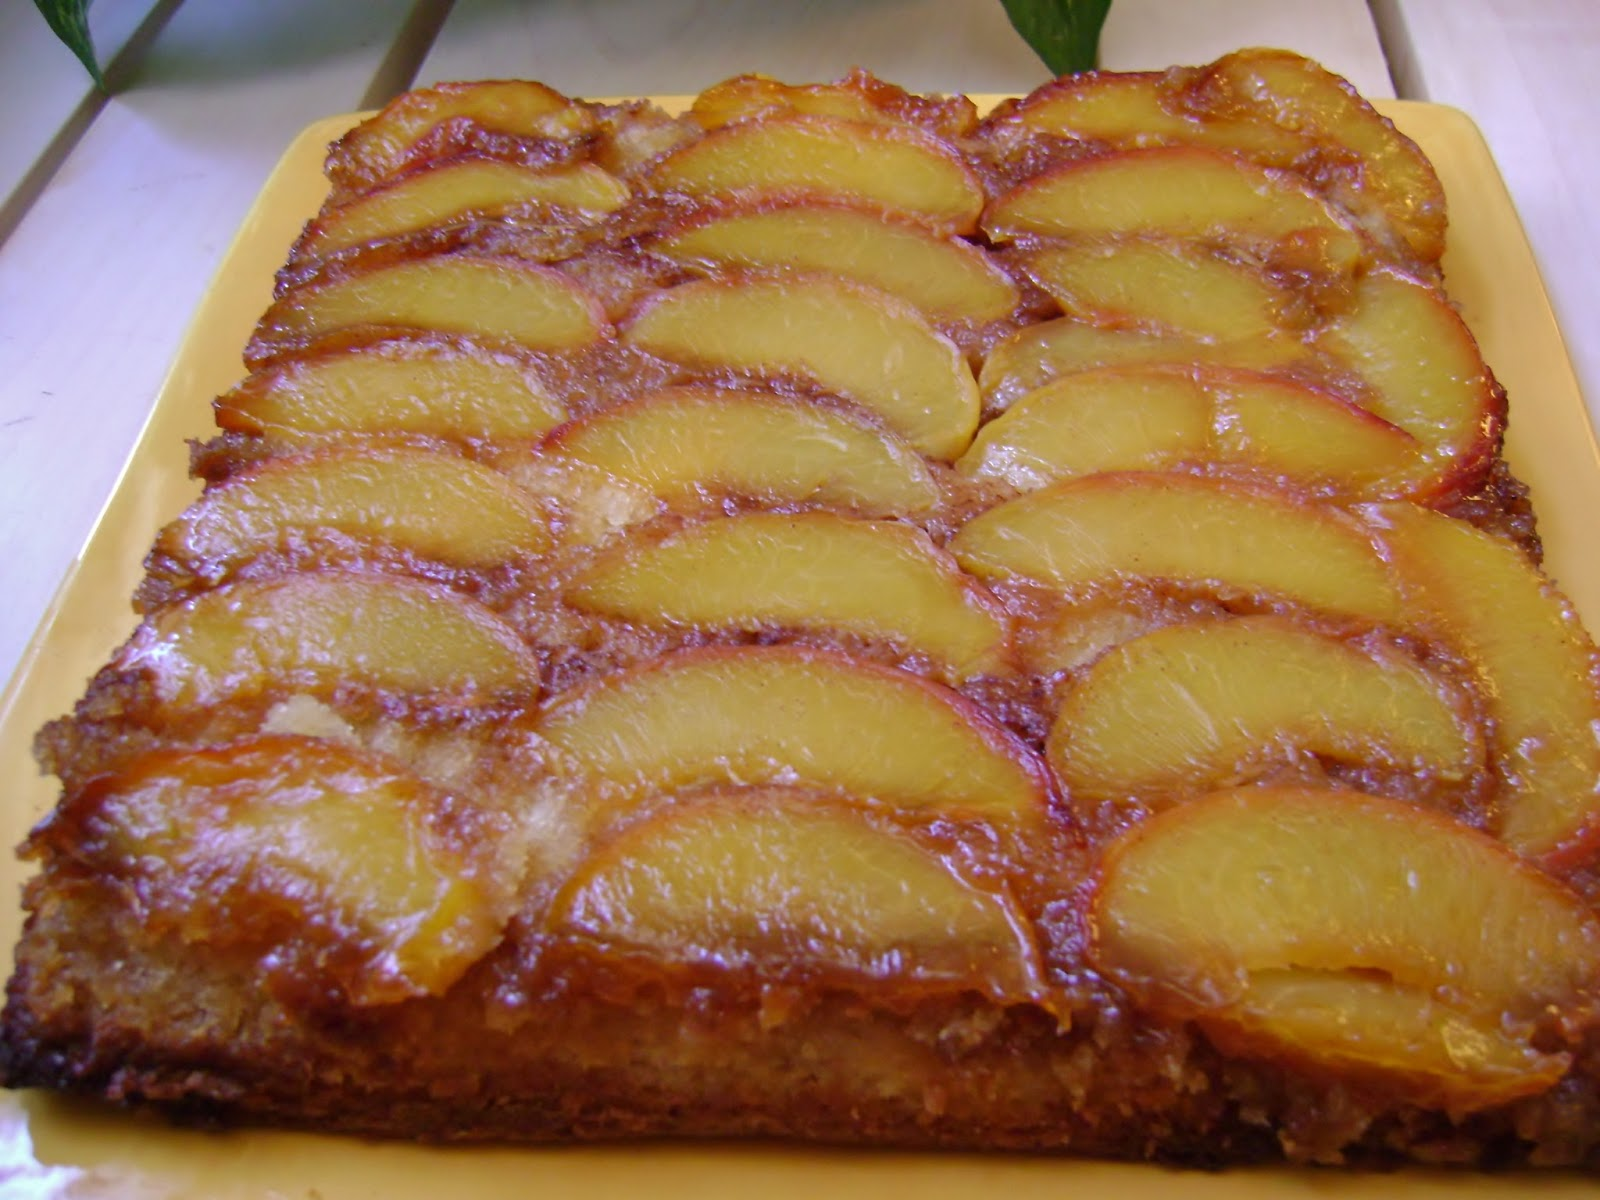 A Sunflower Life: Mystery Cuisine: Peach Upside-Down Cake